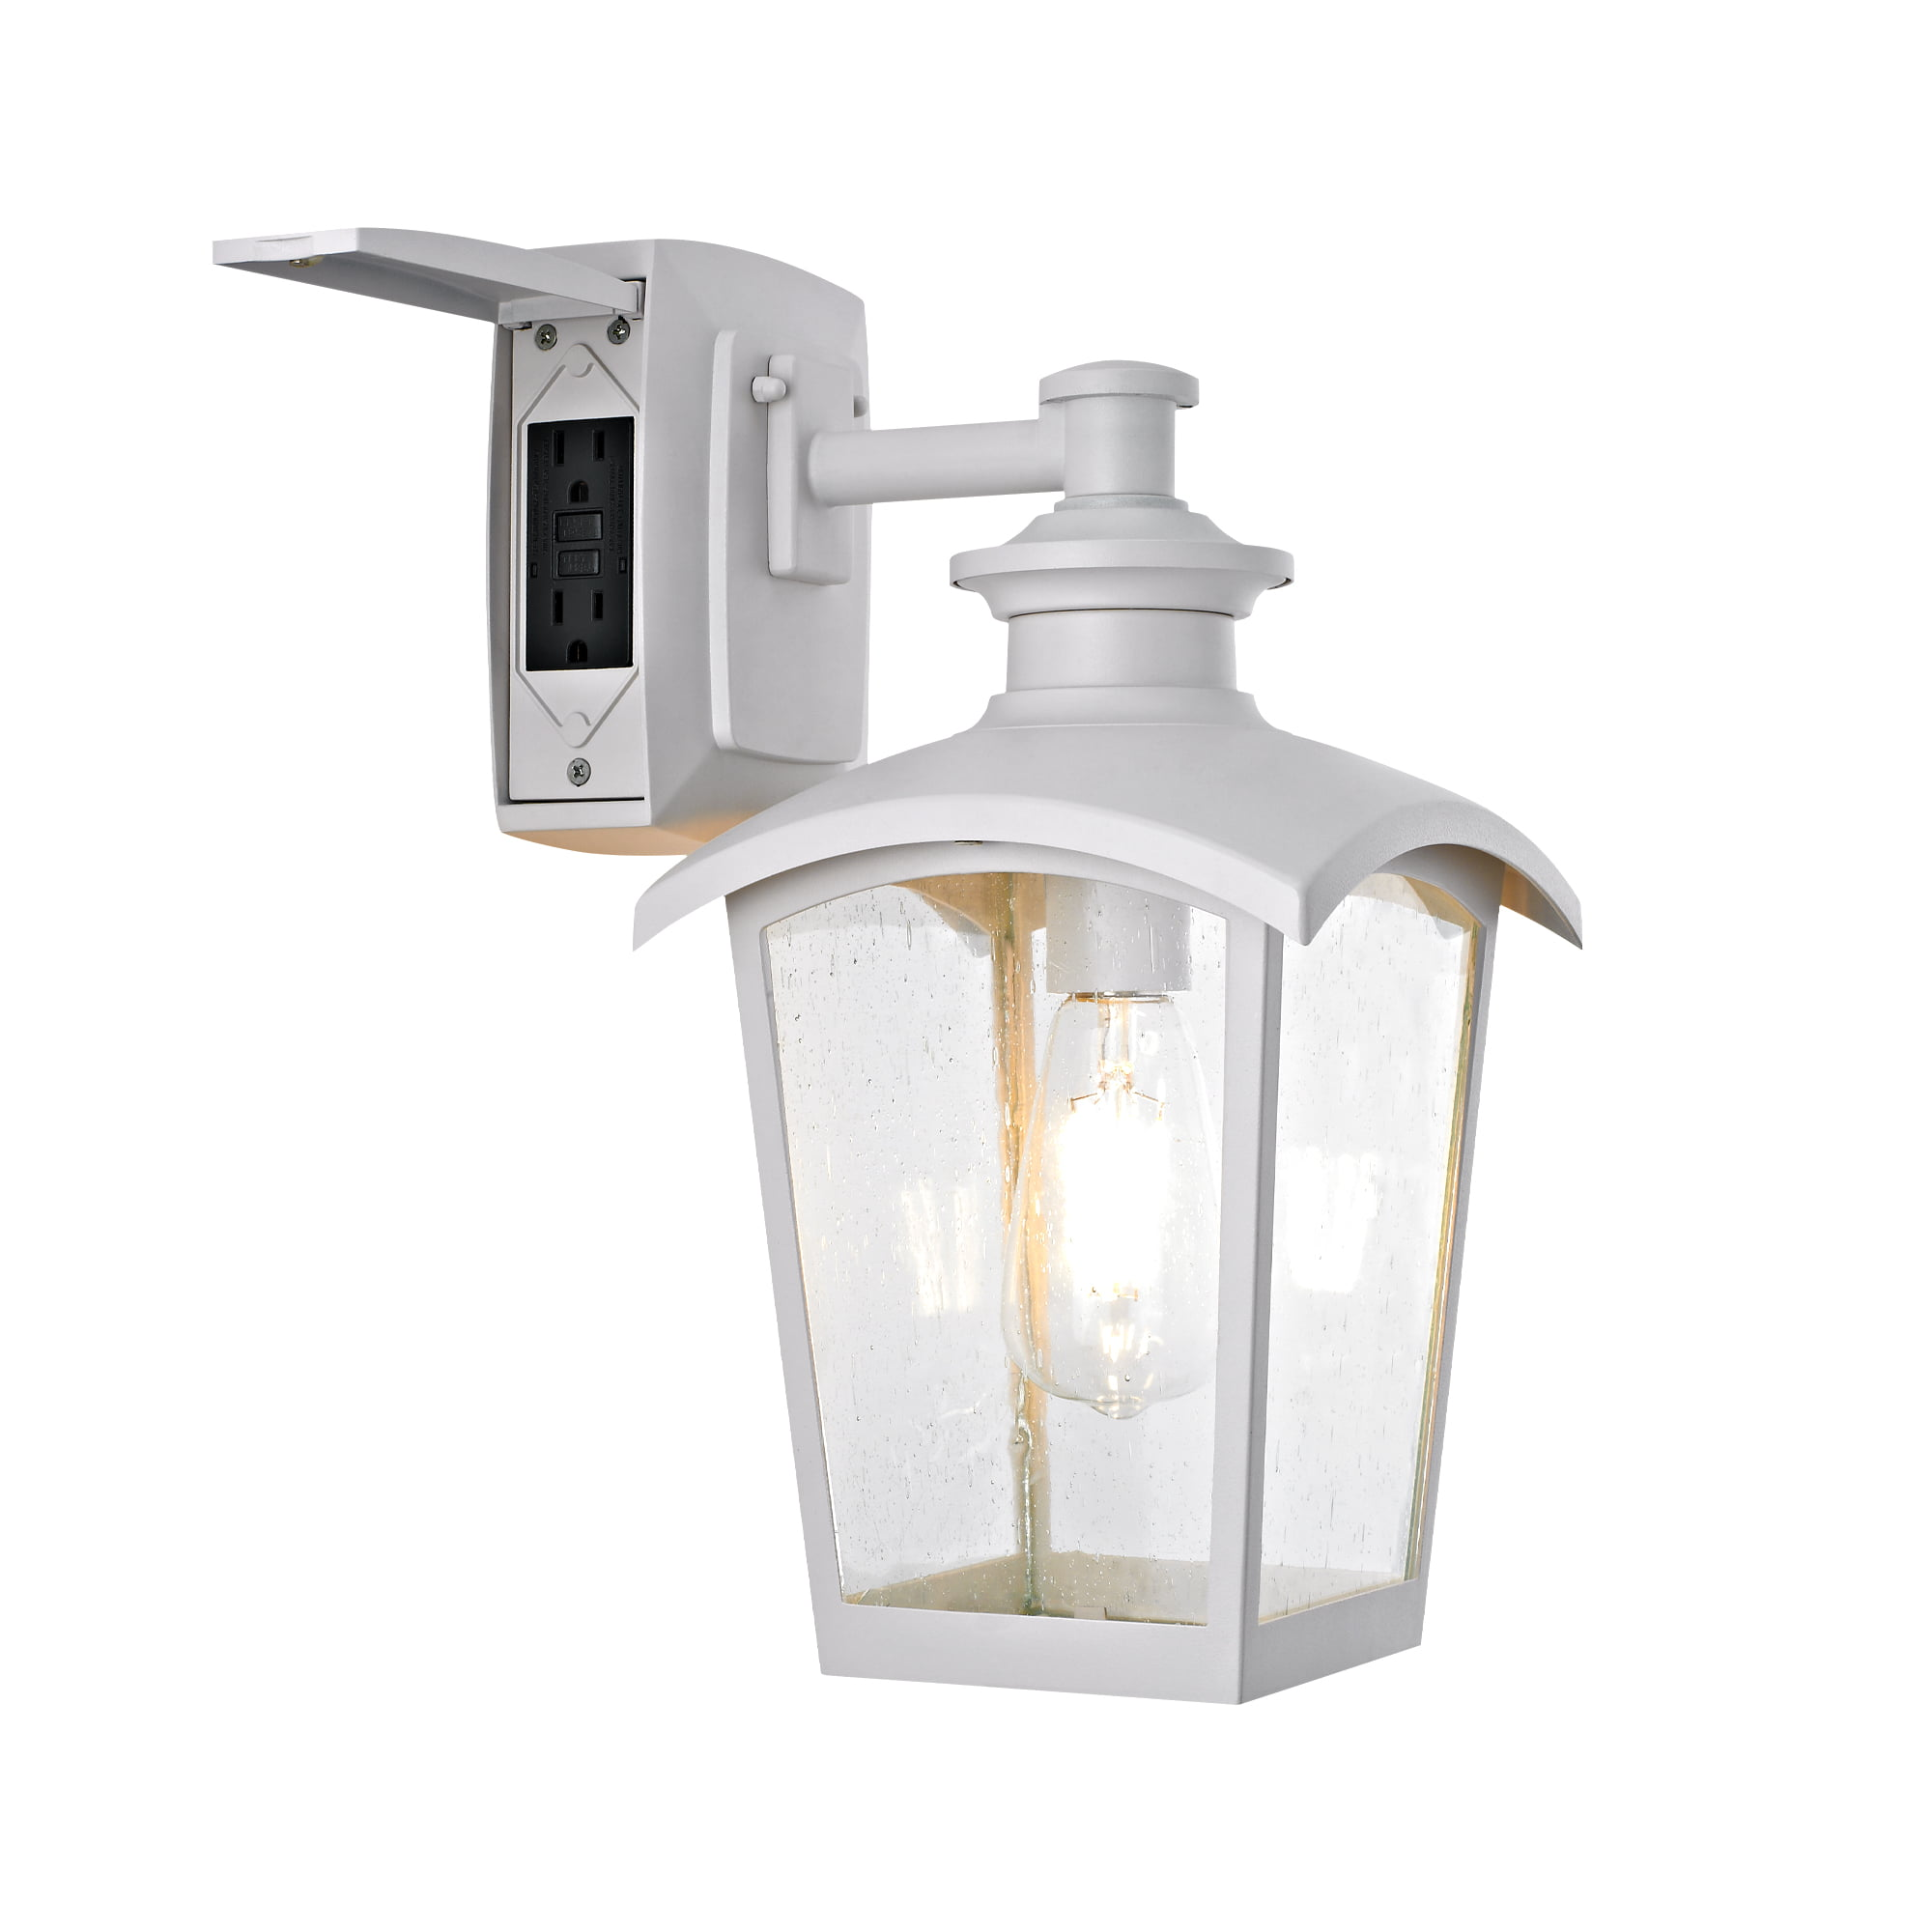 Home Luminaire Spence Collection 1 Light Outdoor Wall Lantern With Seeded Glass And Built In Gfci Outlets White Finish Walmart Com Walmart Com